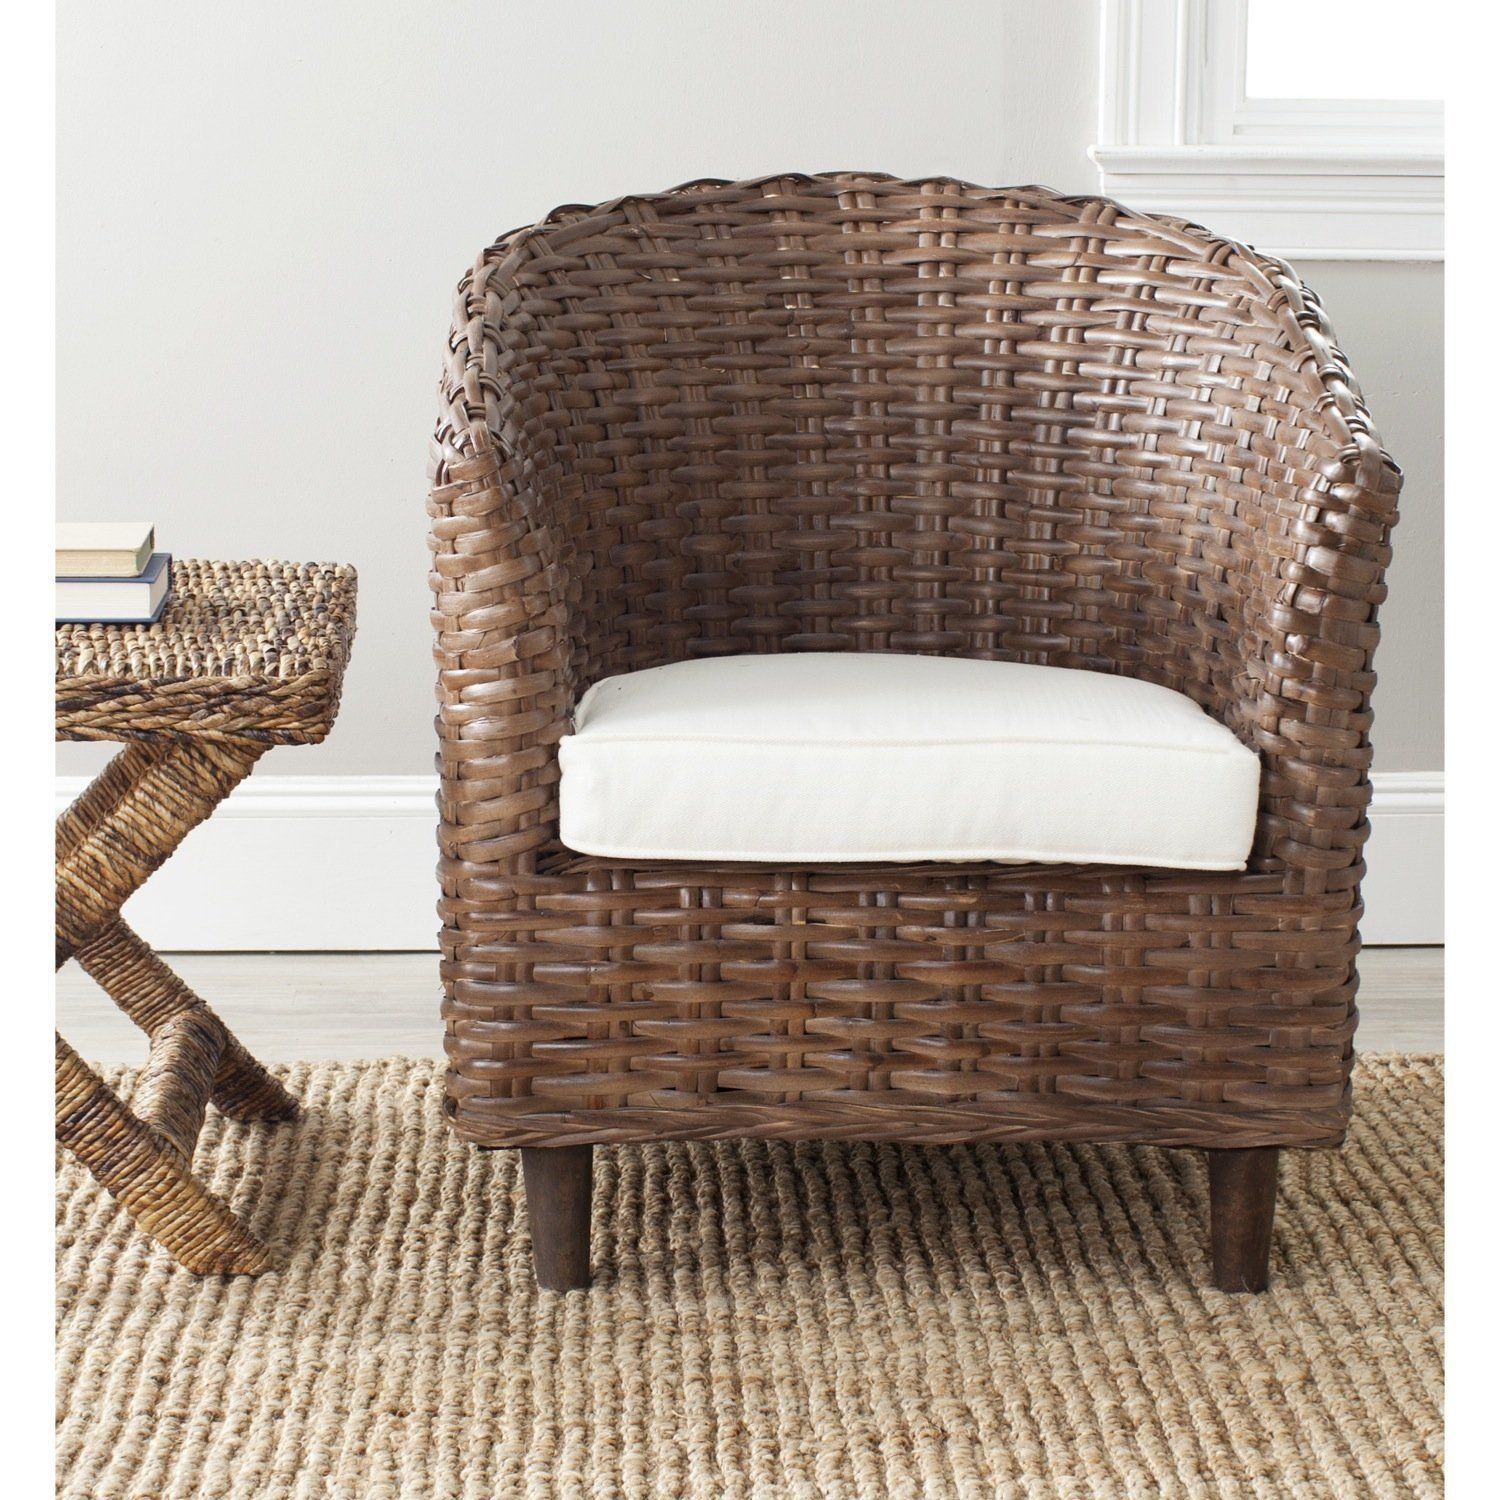 Best indoor wicker chairs and outdoor wicker chairs for